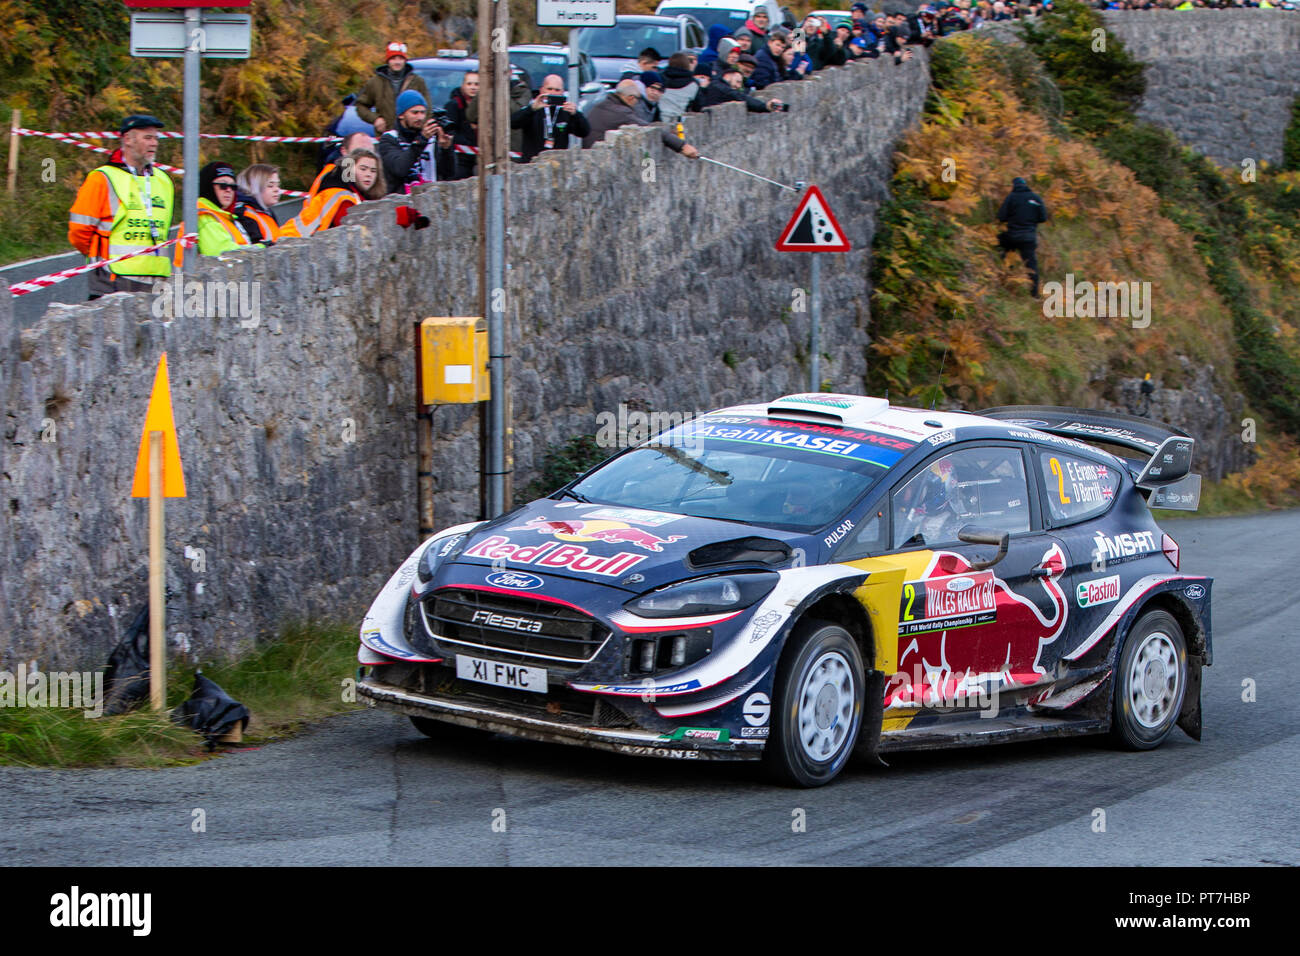 llandudno uk 7th oct 2018 wrc dayinsure wales rally gb day 4 m sport ford world rally team. Black Bedroom Furniture Sets. Home Design Ideas